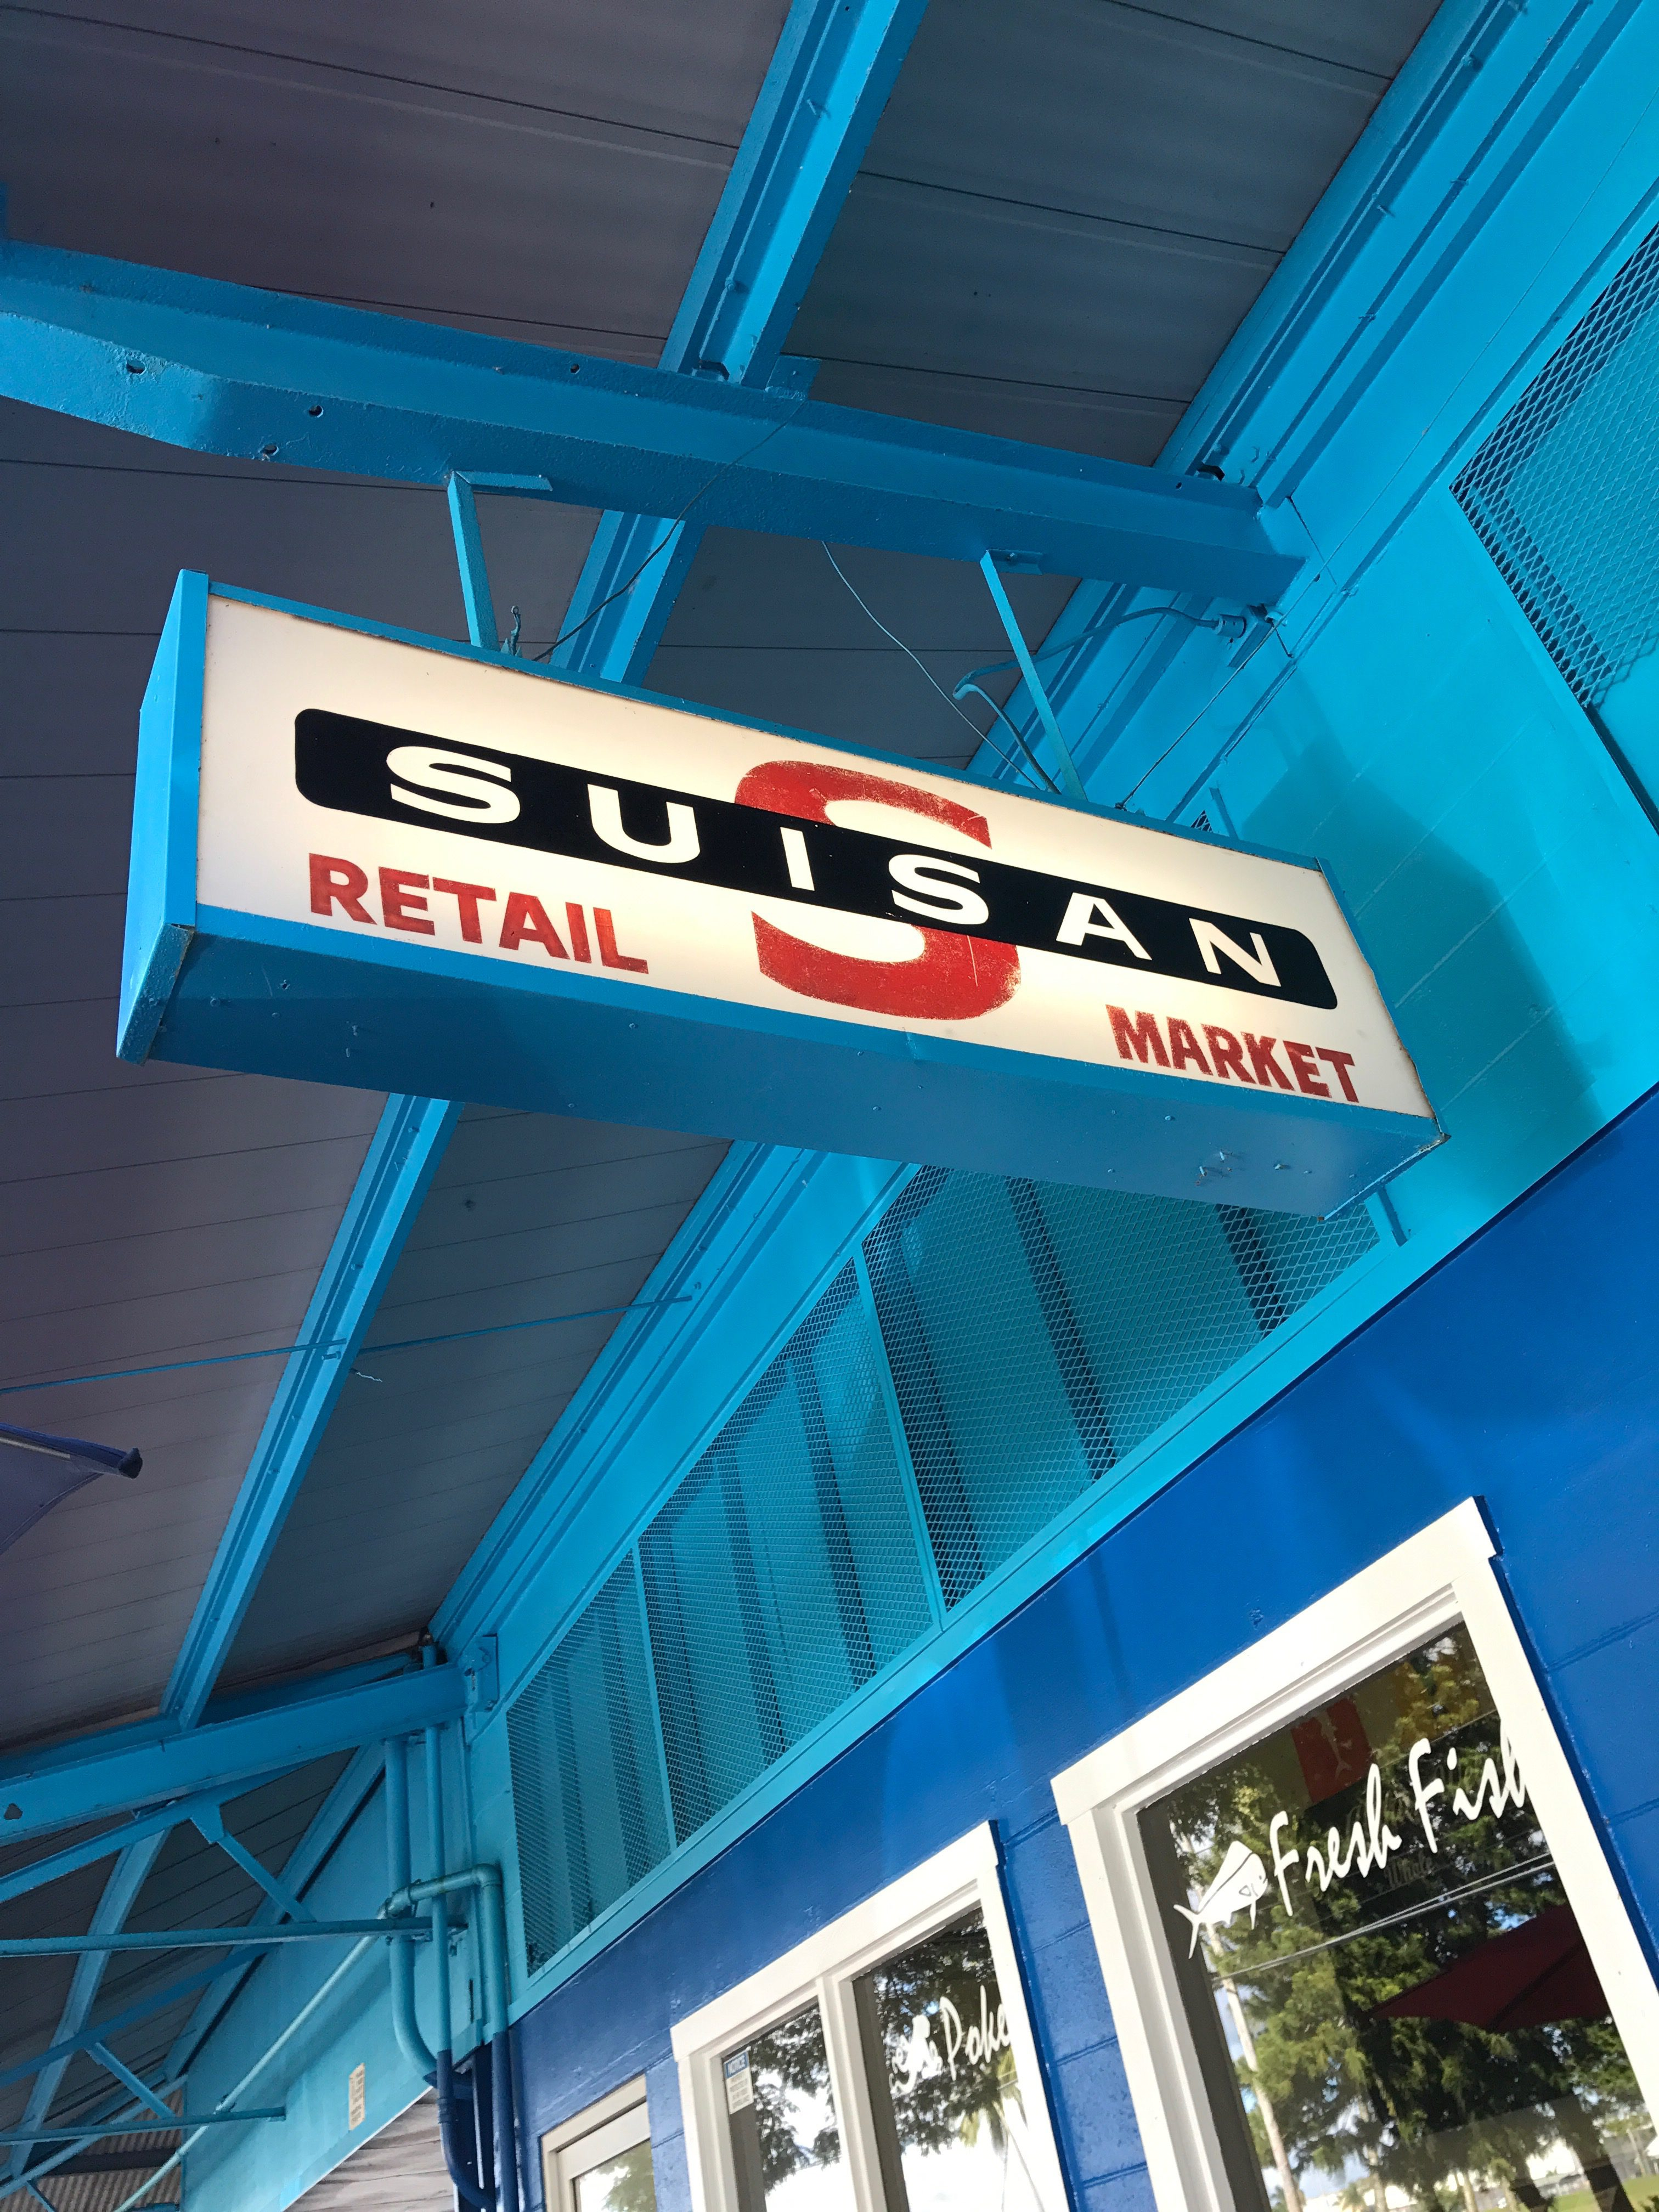 Best places to eat in hilo hawaii escape on a dime for Suisan fish market